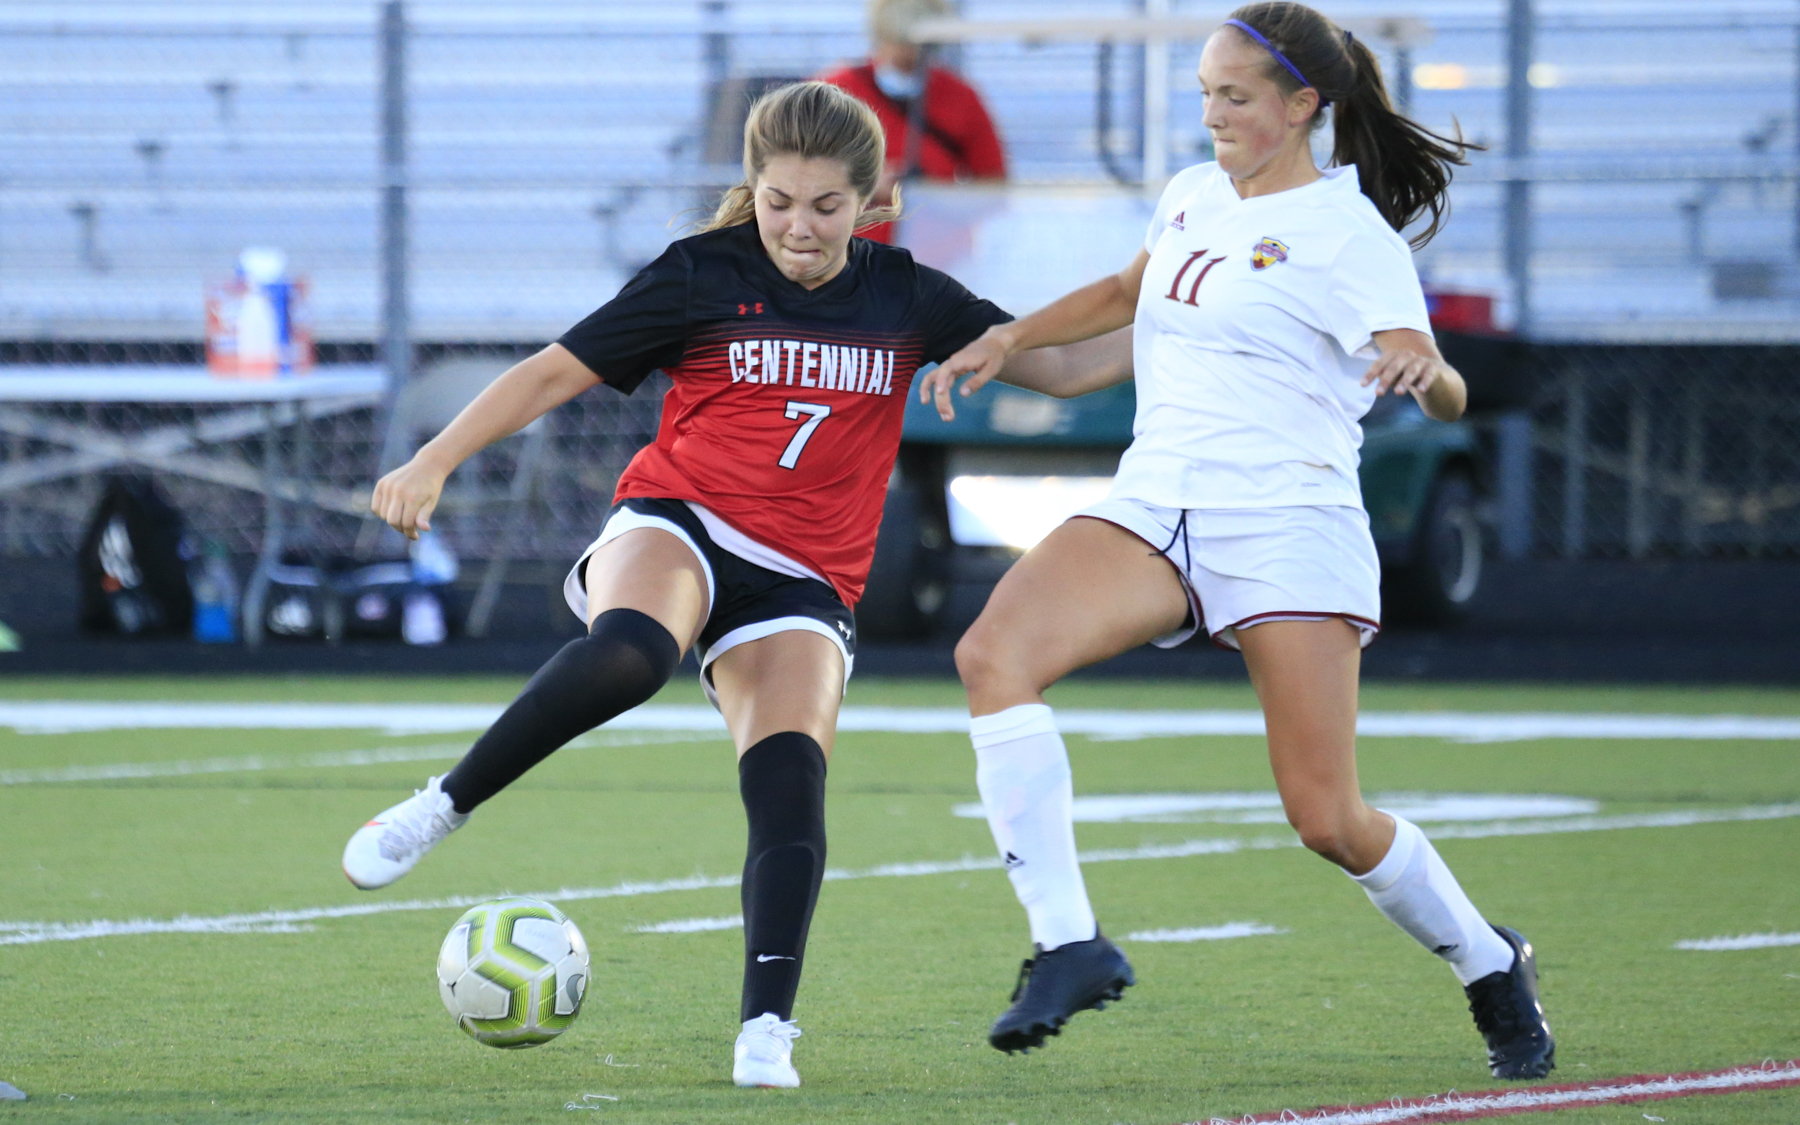 Centennial's Khyah Harper (7) tries to gain control of the ball under pressure from Maple Grove's Avery Toms (11) Wednesday at Centennial High School. Harper had the lone goal in the Cougars' 1-0 defeat of the Crimson. Photo by Jeff Lawler, SportsEngine